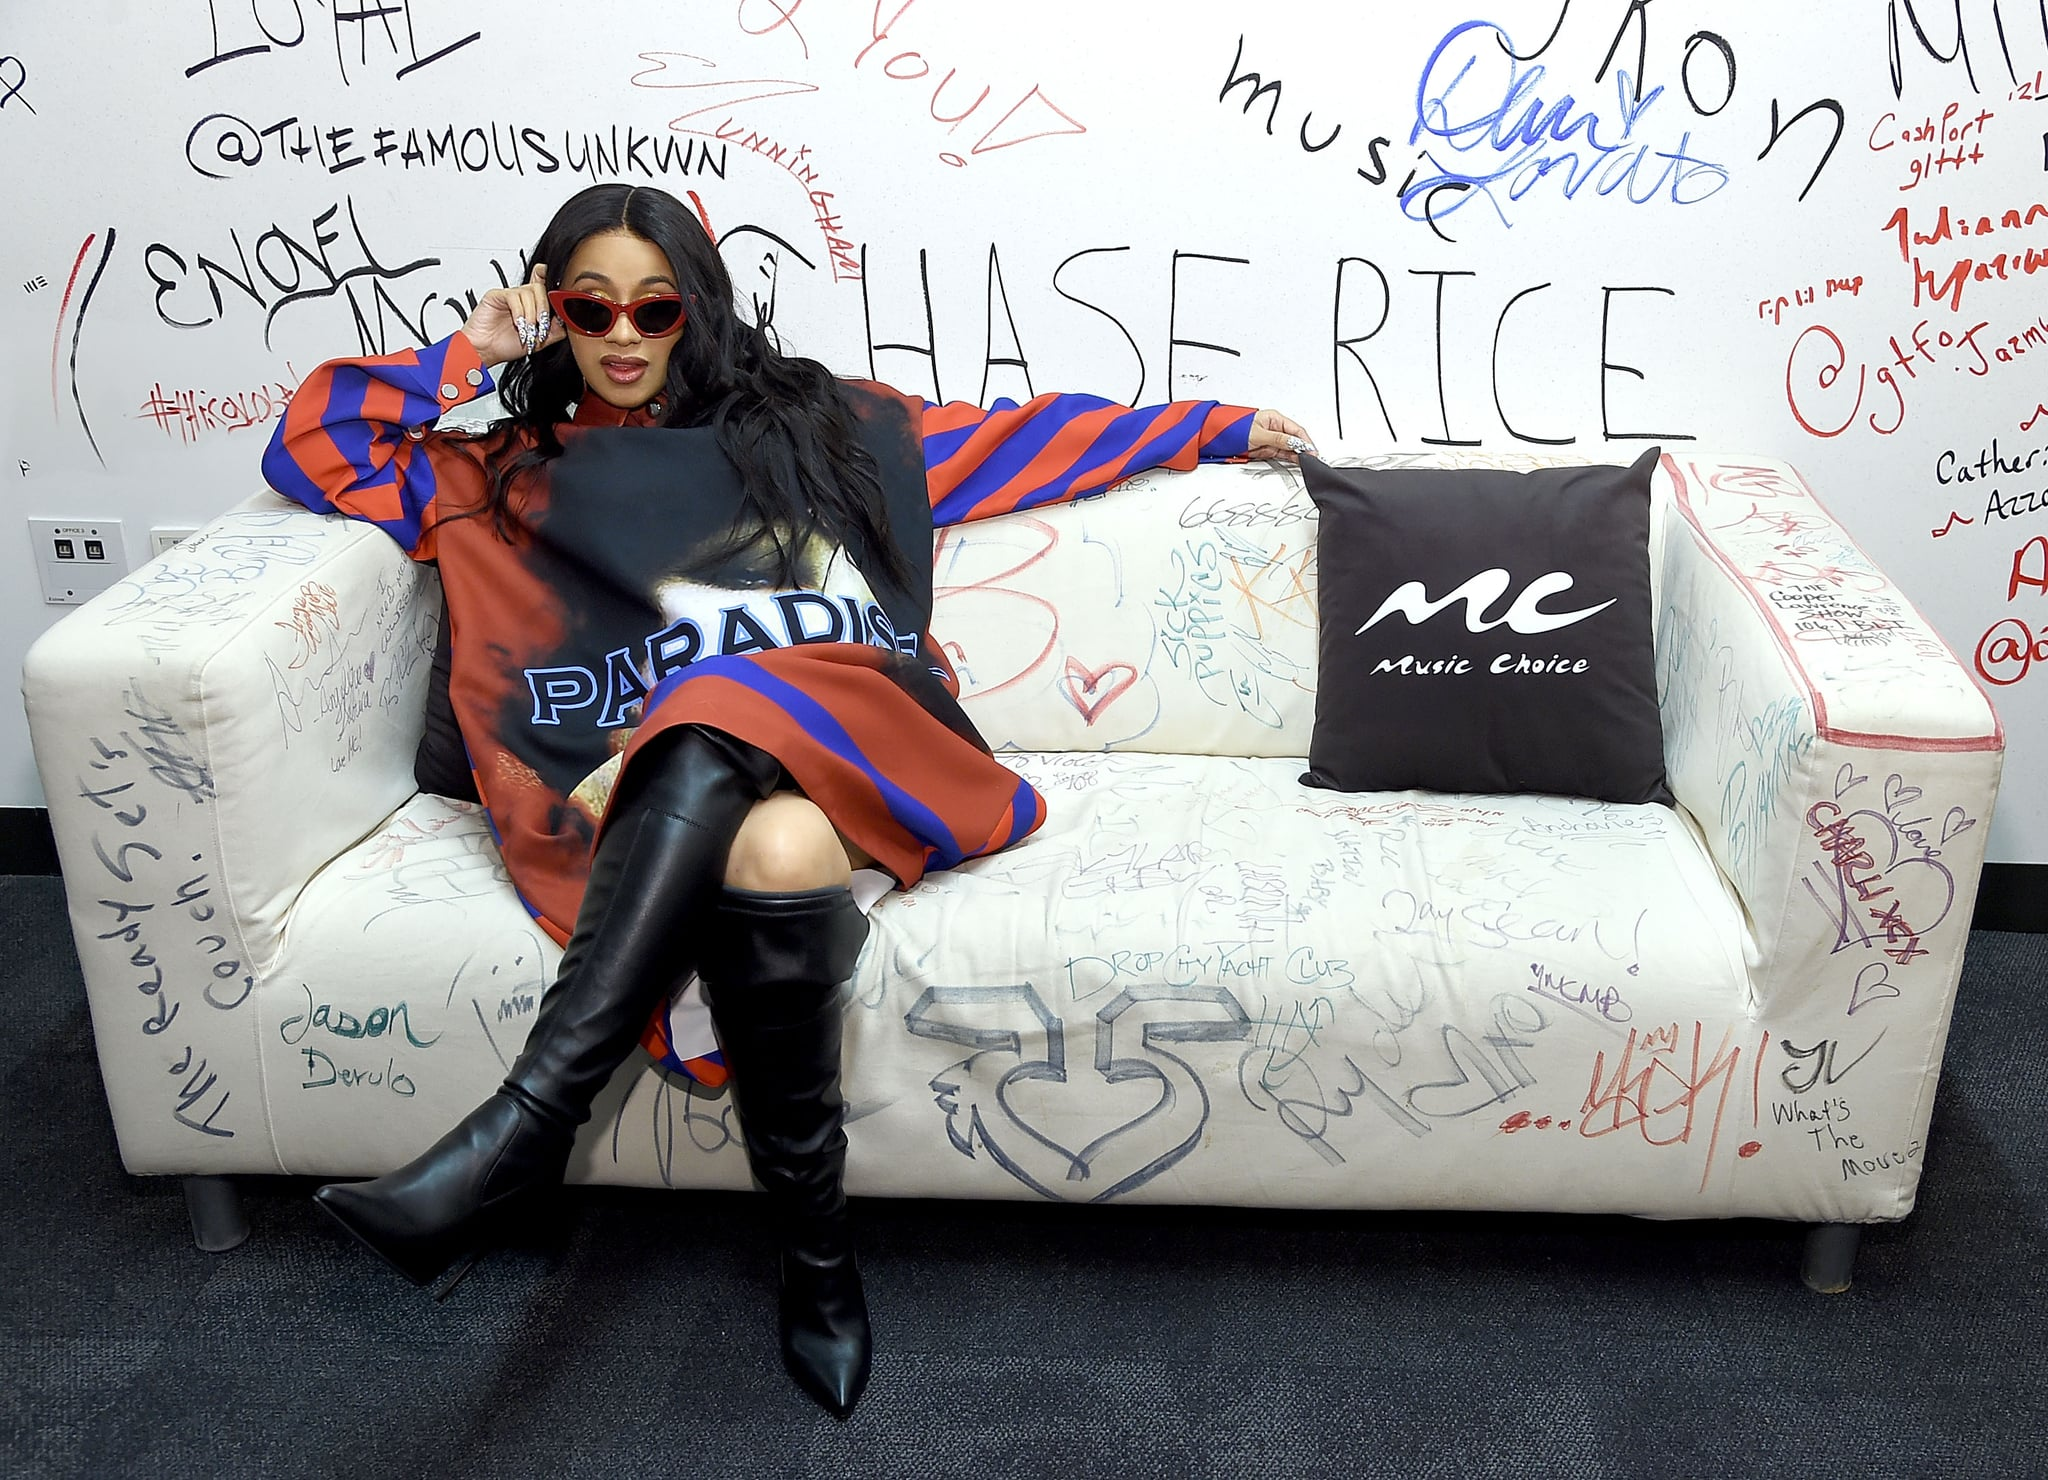 NEW YORK, NY - APRIL 10:  Cardi B visits Music Choice at Music Choice on April 10, 2018 in New York City.  (Photo by Jamie McCarthy/Getty Images)